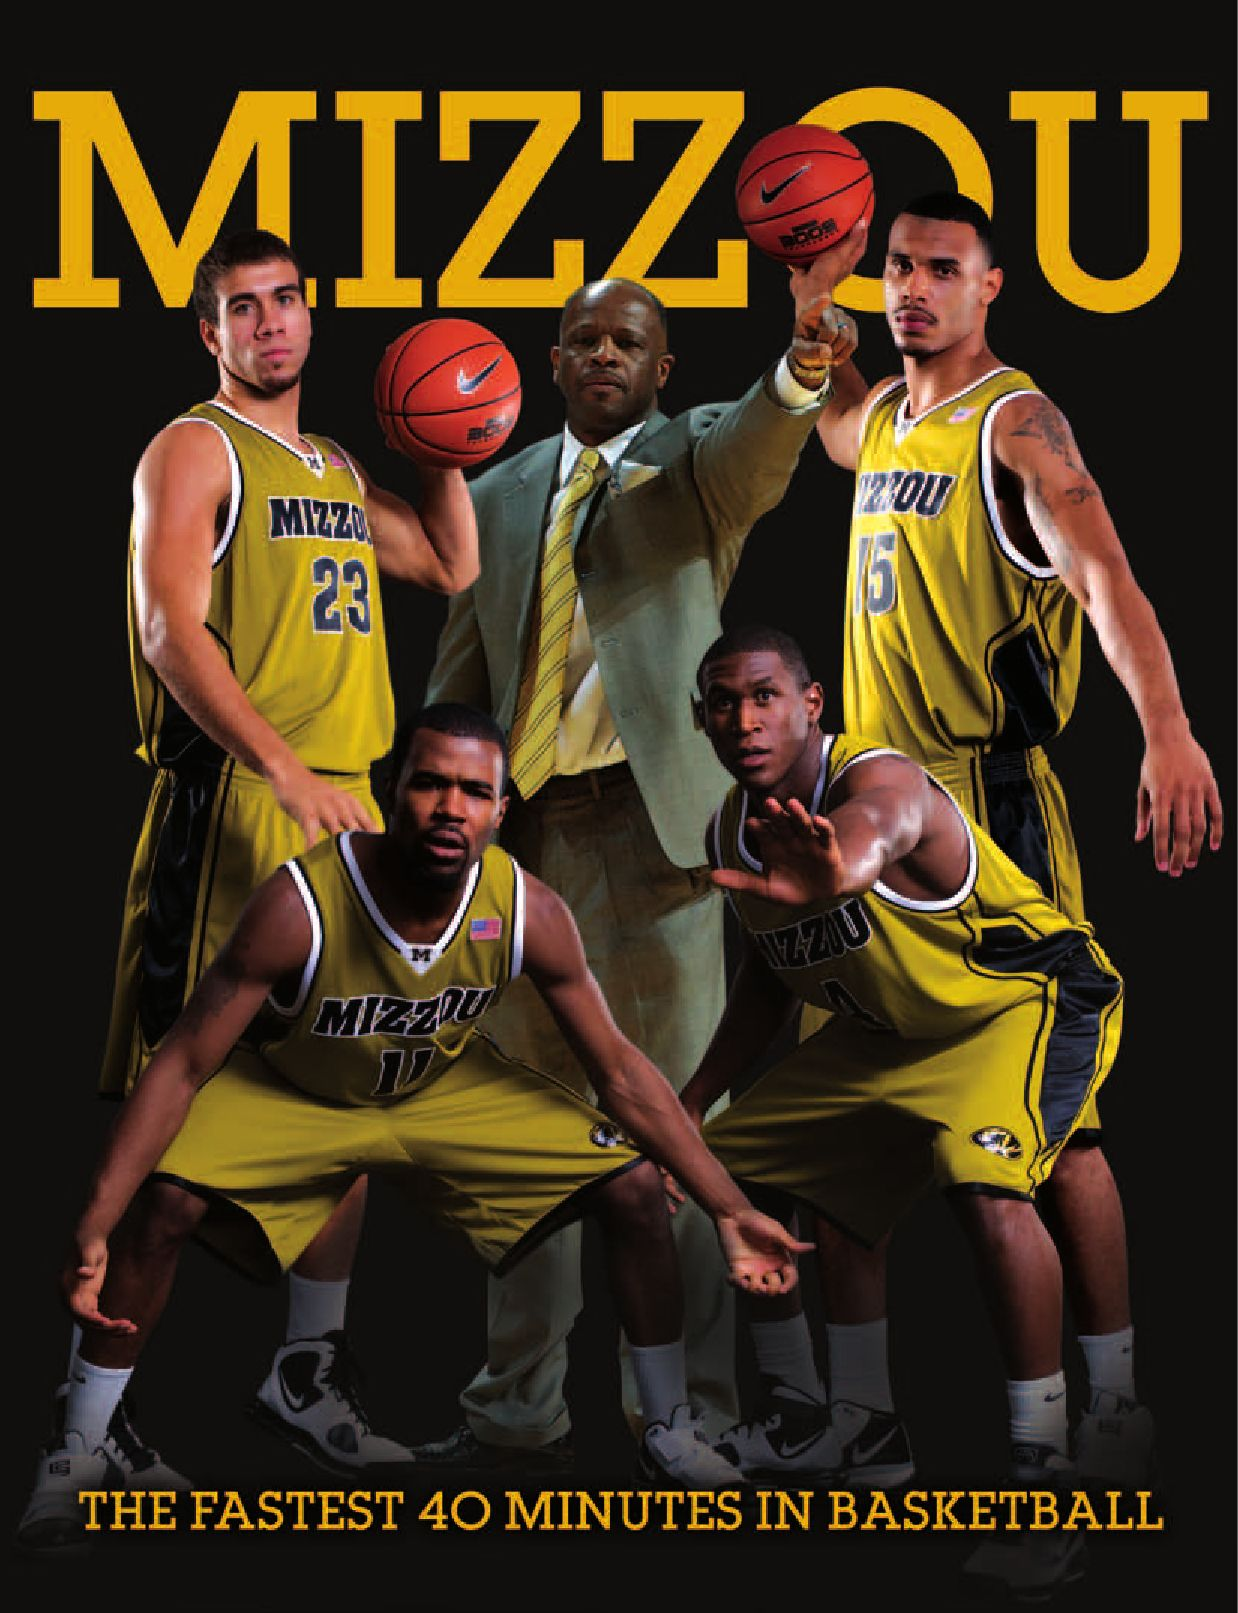 235759fad 2009-10 Mizzou Basketball Media Guide by David Reiter - issuu